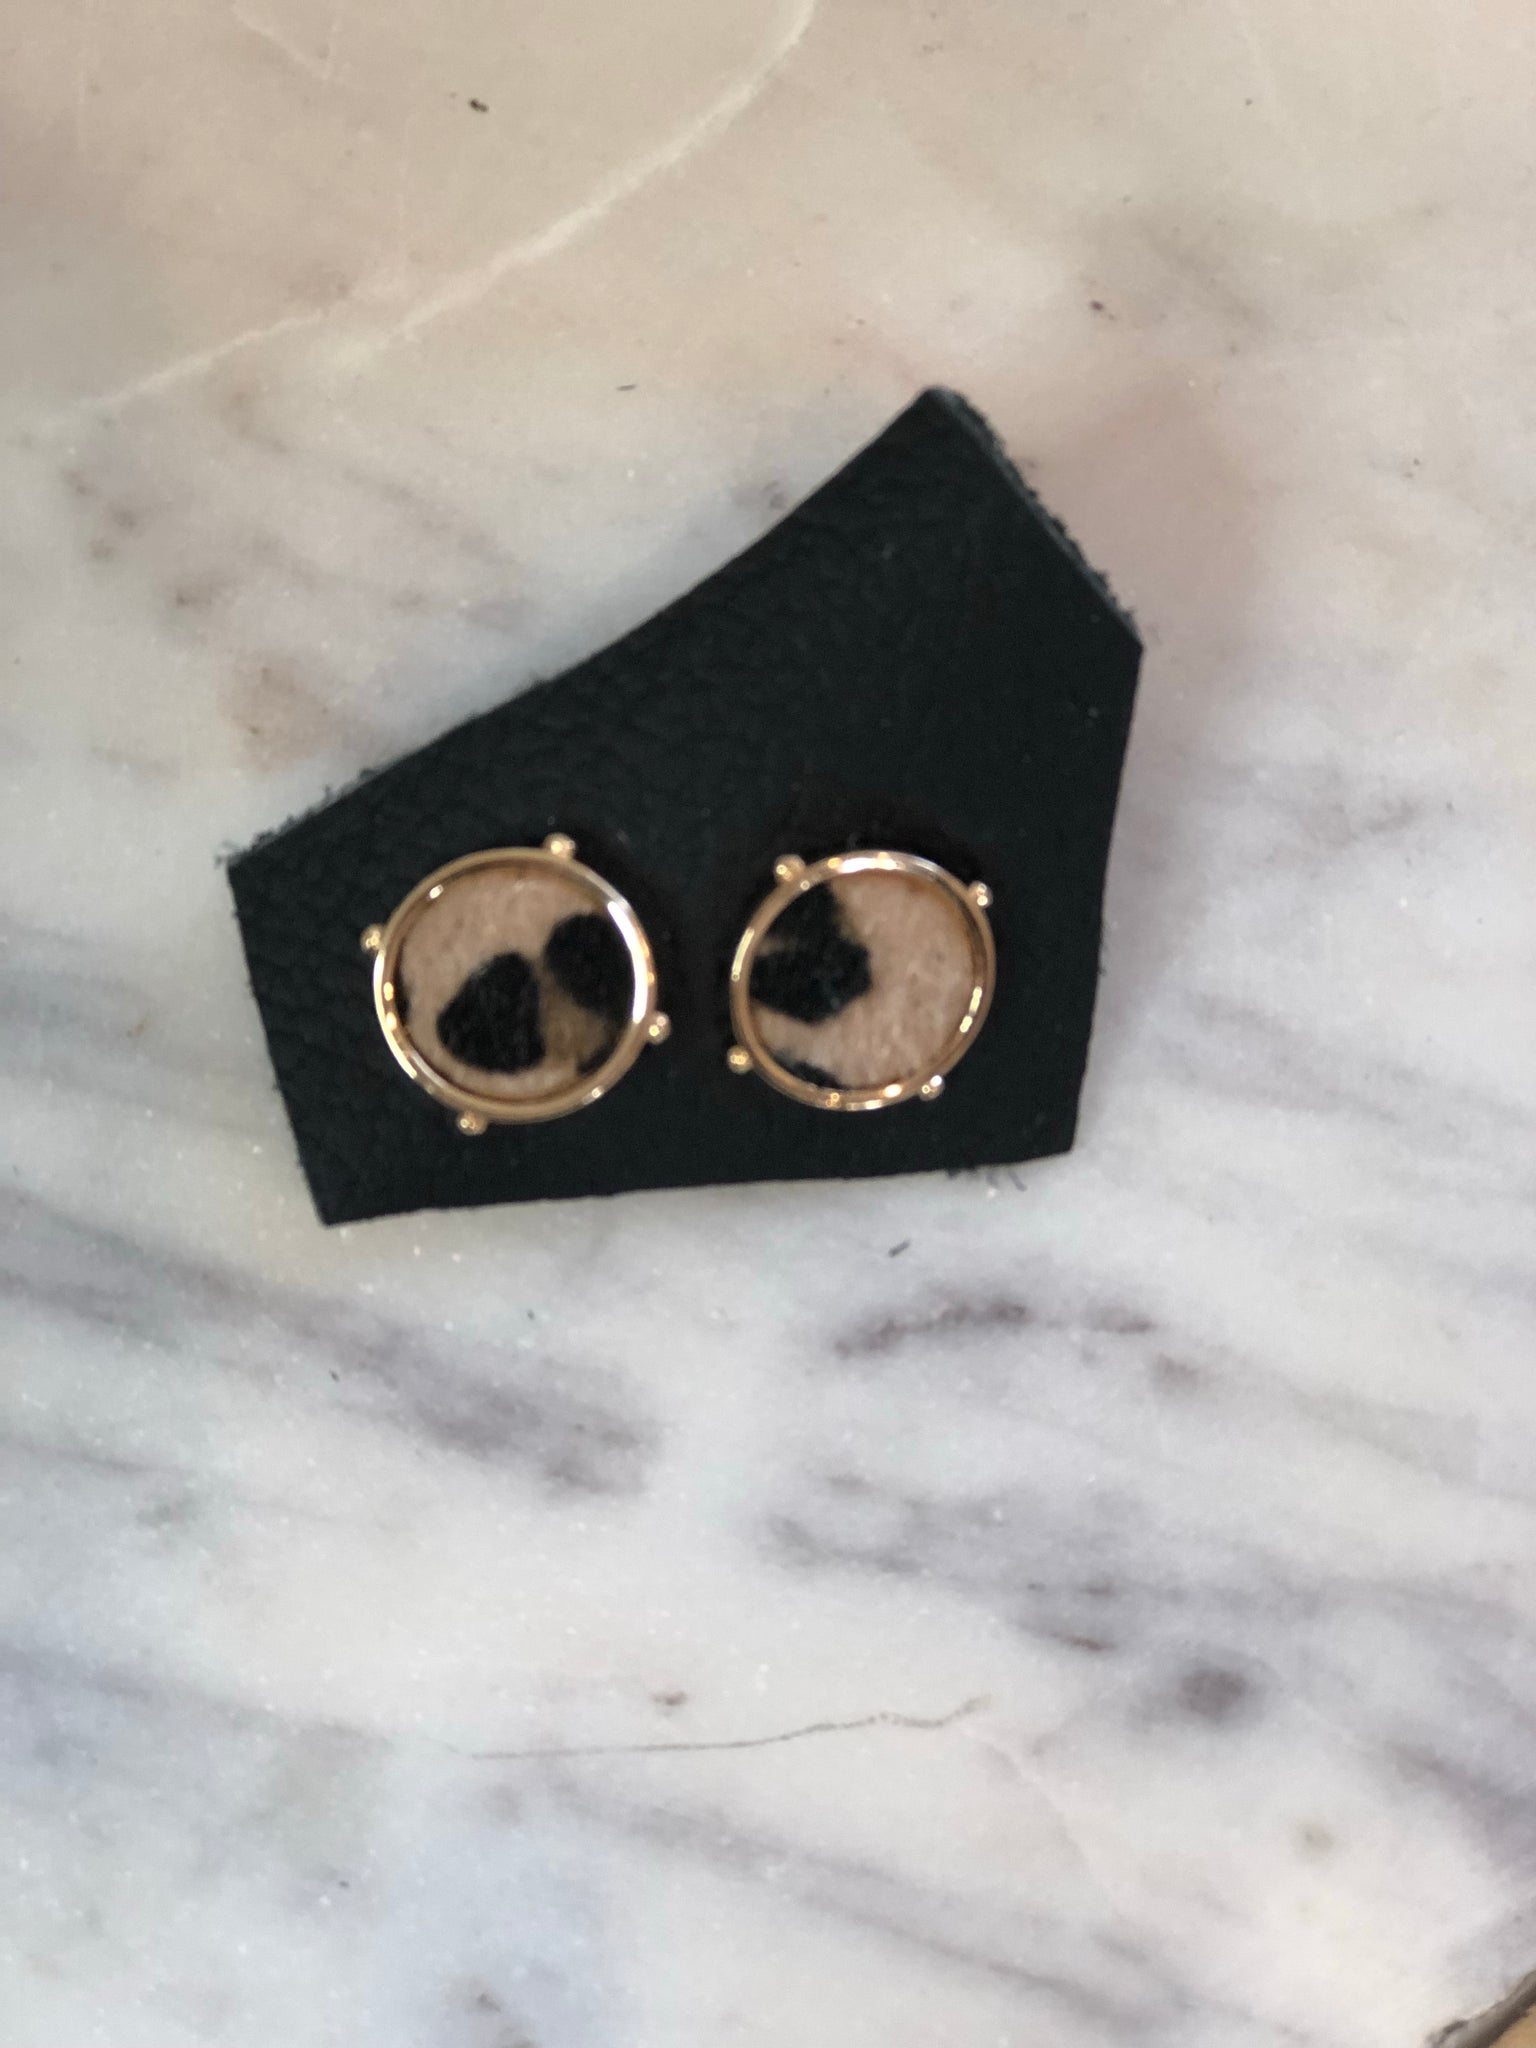 button earrings with cheetah detail